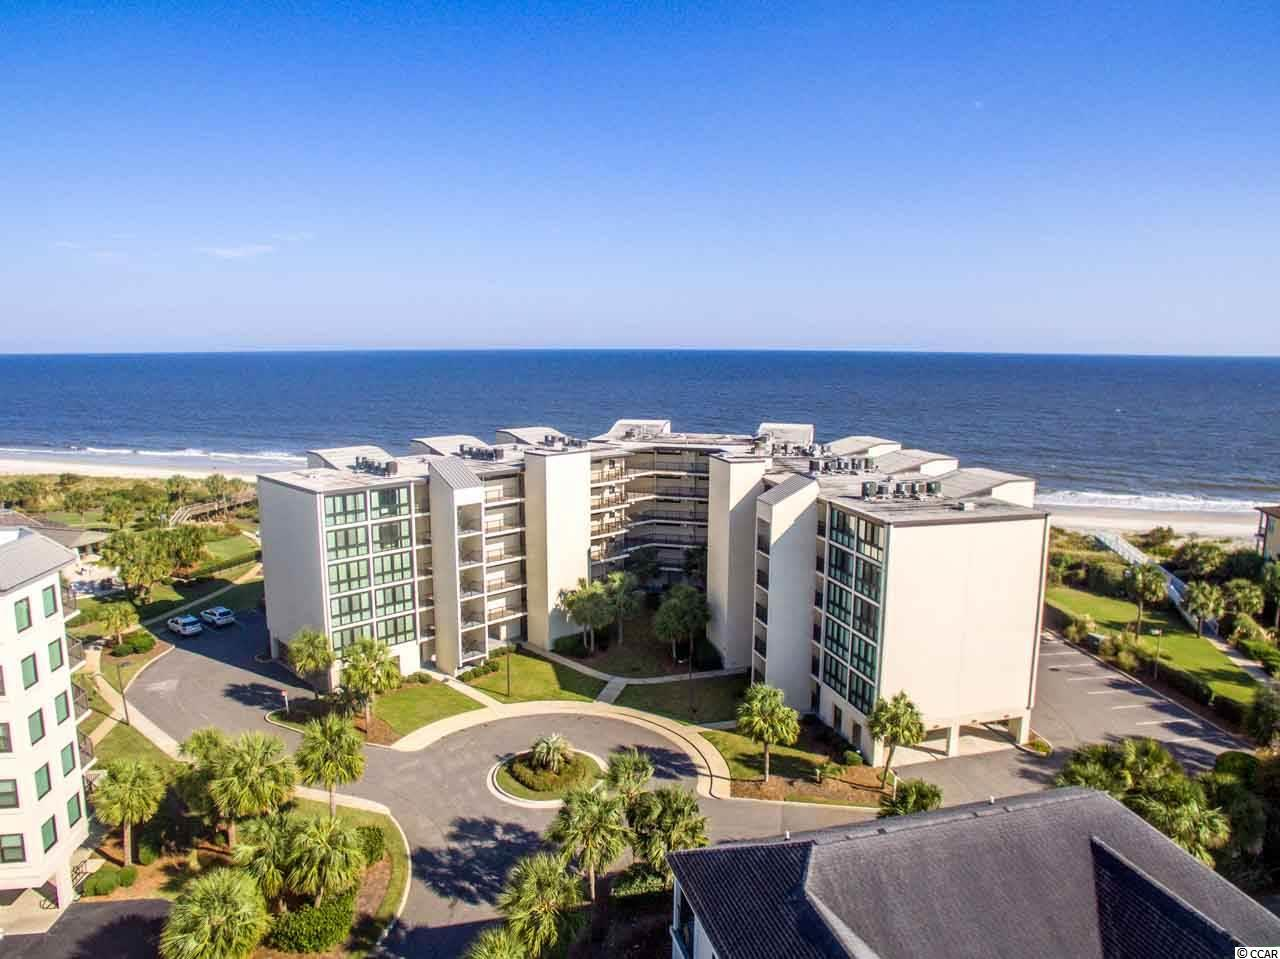 Oceanfront and priced to sell in private resort community!  3 BR, 2 BA in Shipyard Village at Litchfield by the Sea with exceptional views of the beach, ocean and streetscape of Charlestowne Grant. Open floorplan that easily flows from the kitchen, dining and living areas and pours out to the balcony with that allows the ocean and dunescape to feel like a part of your living space! The master bedroom has ample closet space and a charming backdrop of the Charleston style homes in the community's luxury home enclave. The additional guest bedrooms feature hospitality sinks in each. Furnished and equipped as a vacation rental. Litchfield by the Sea is an amenity rich oceanfront community with oceanfront clubhouse, tennis courts, walking/bike paths, crabbing and fishing docks and miles of undisturbed beaches.